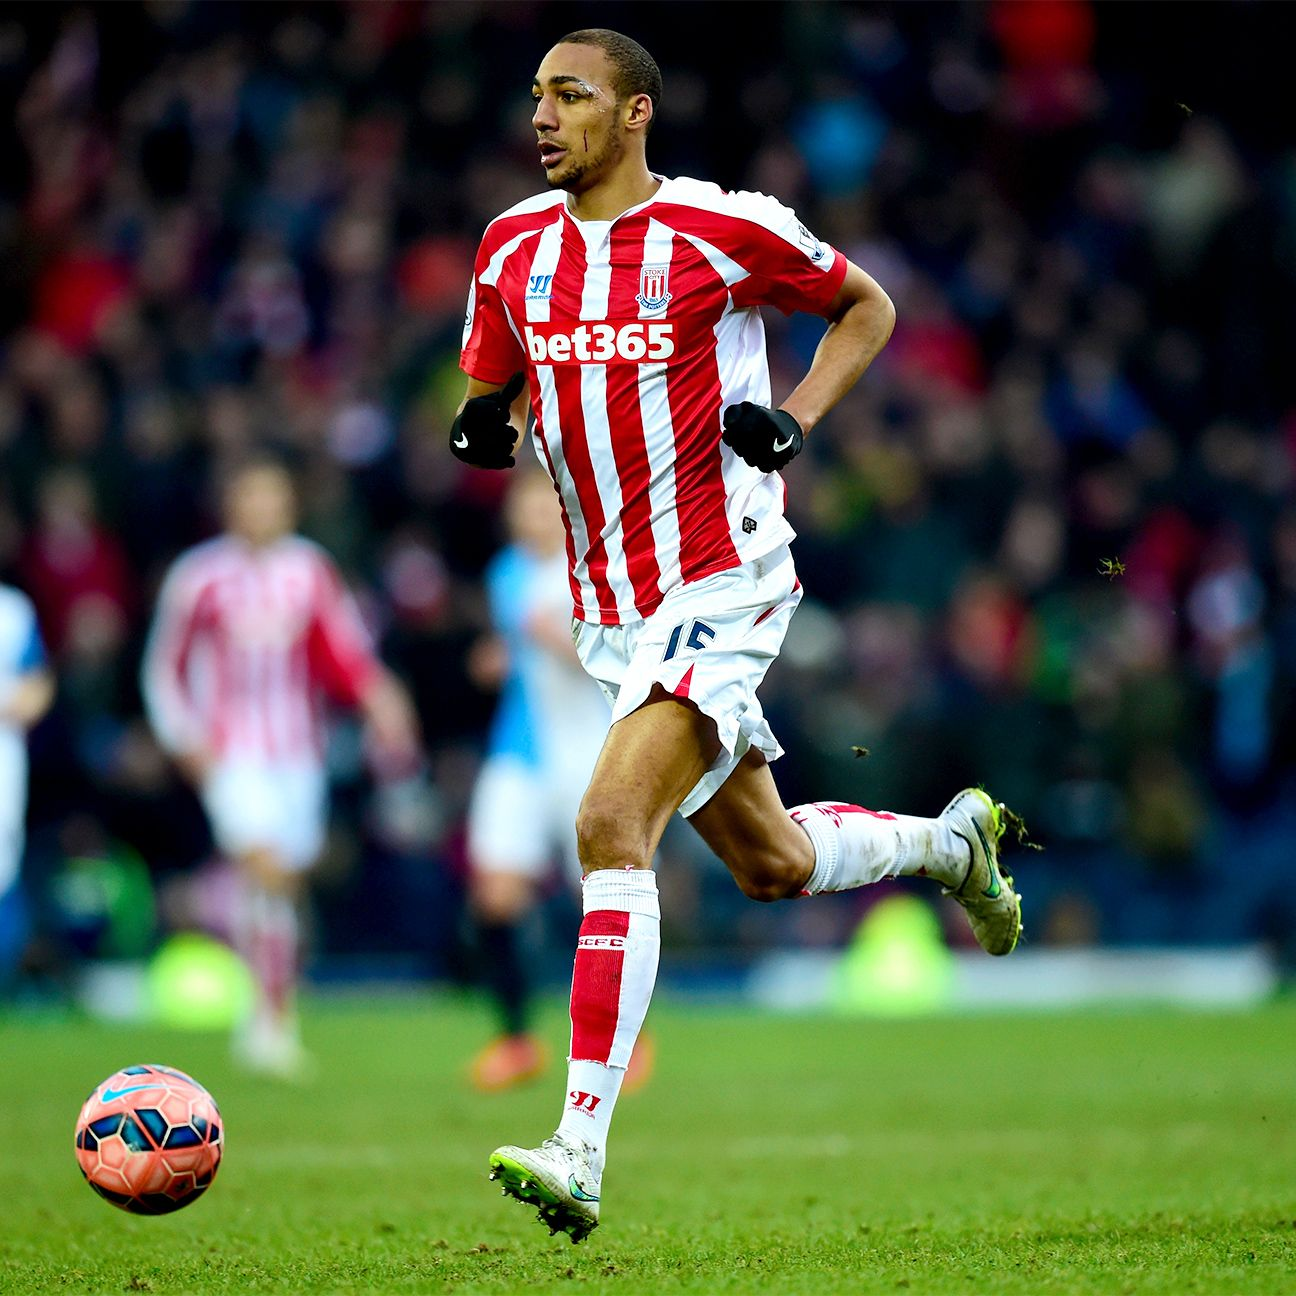 Steven N'Zonzi has been a mainstay in the Stoke starting XI since arriving in August 2012.